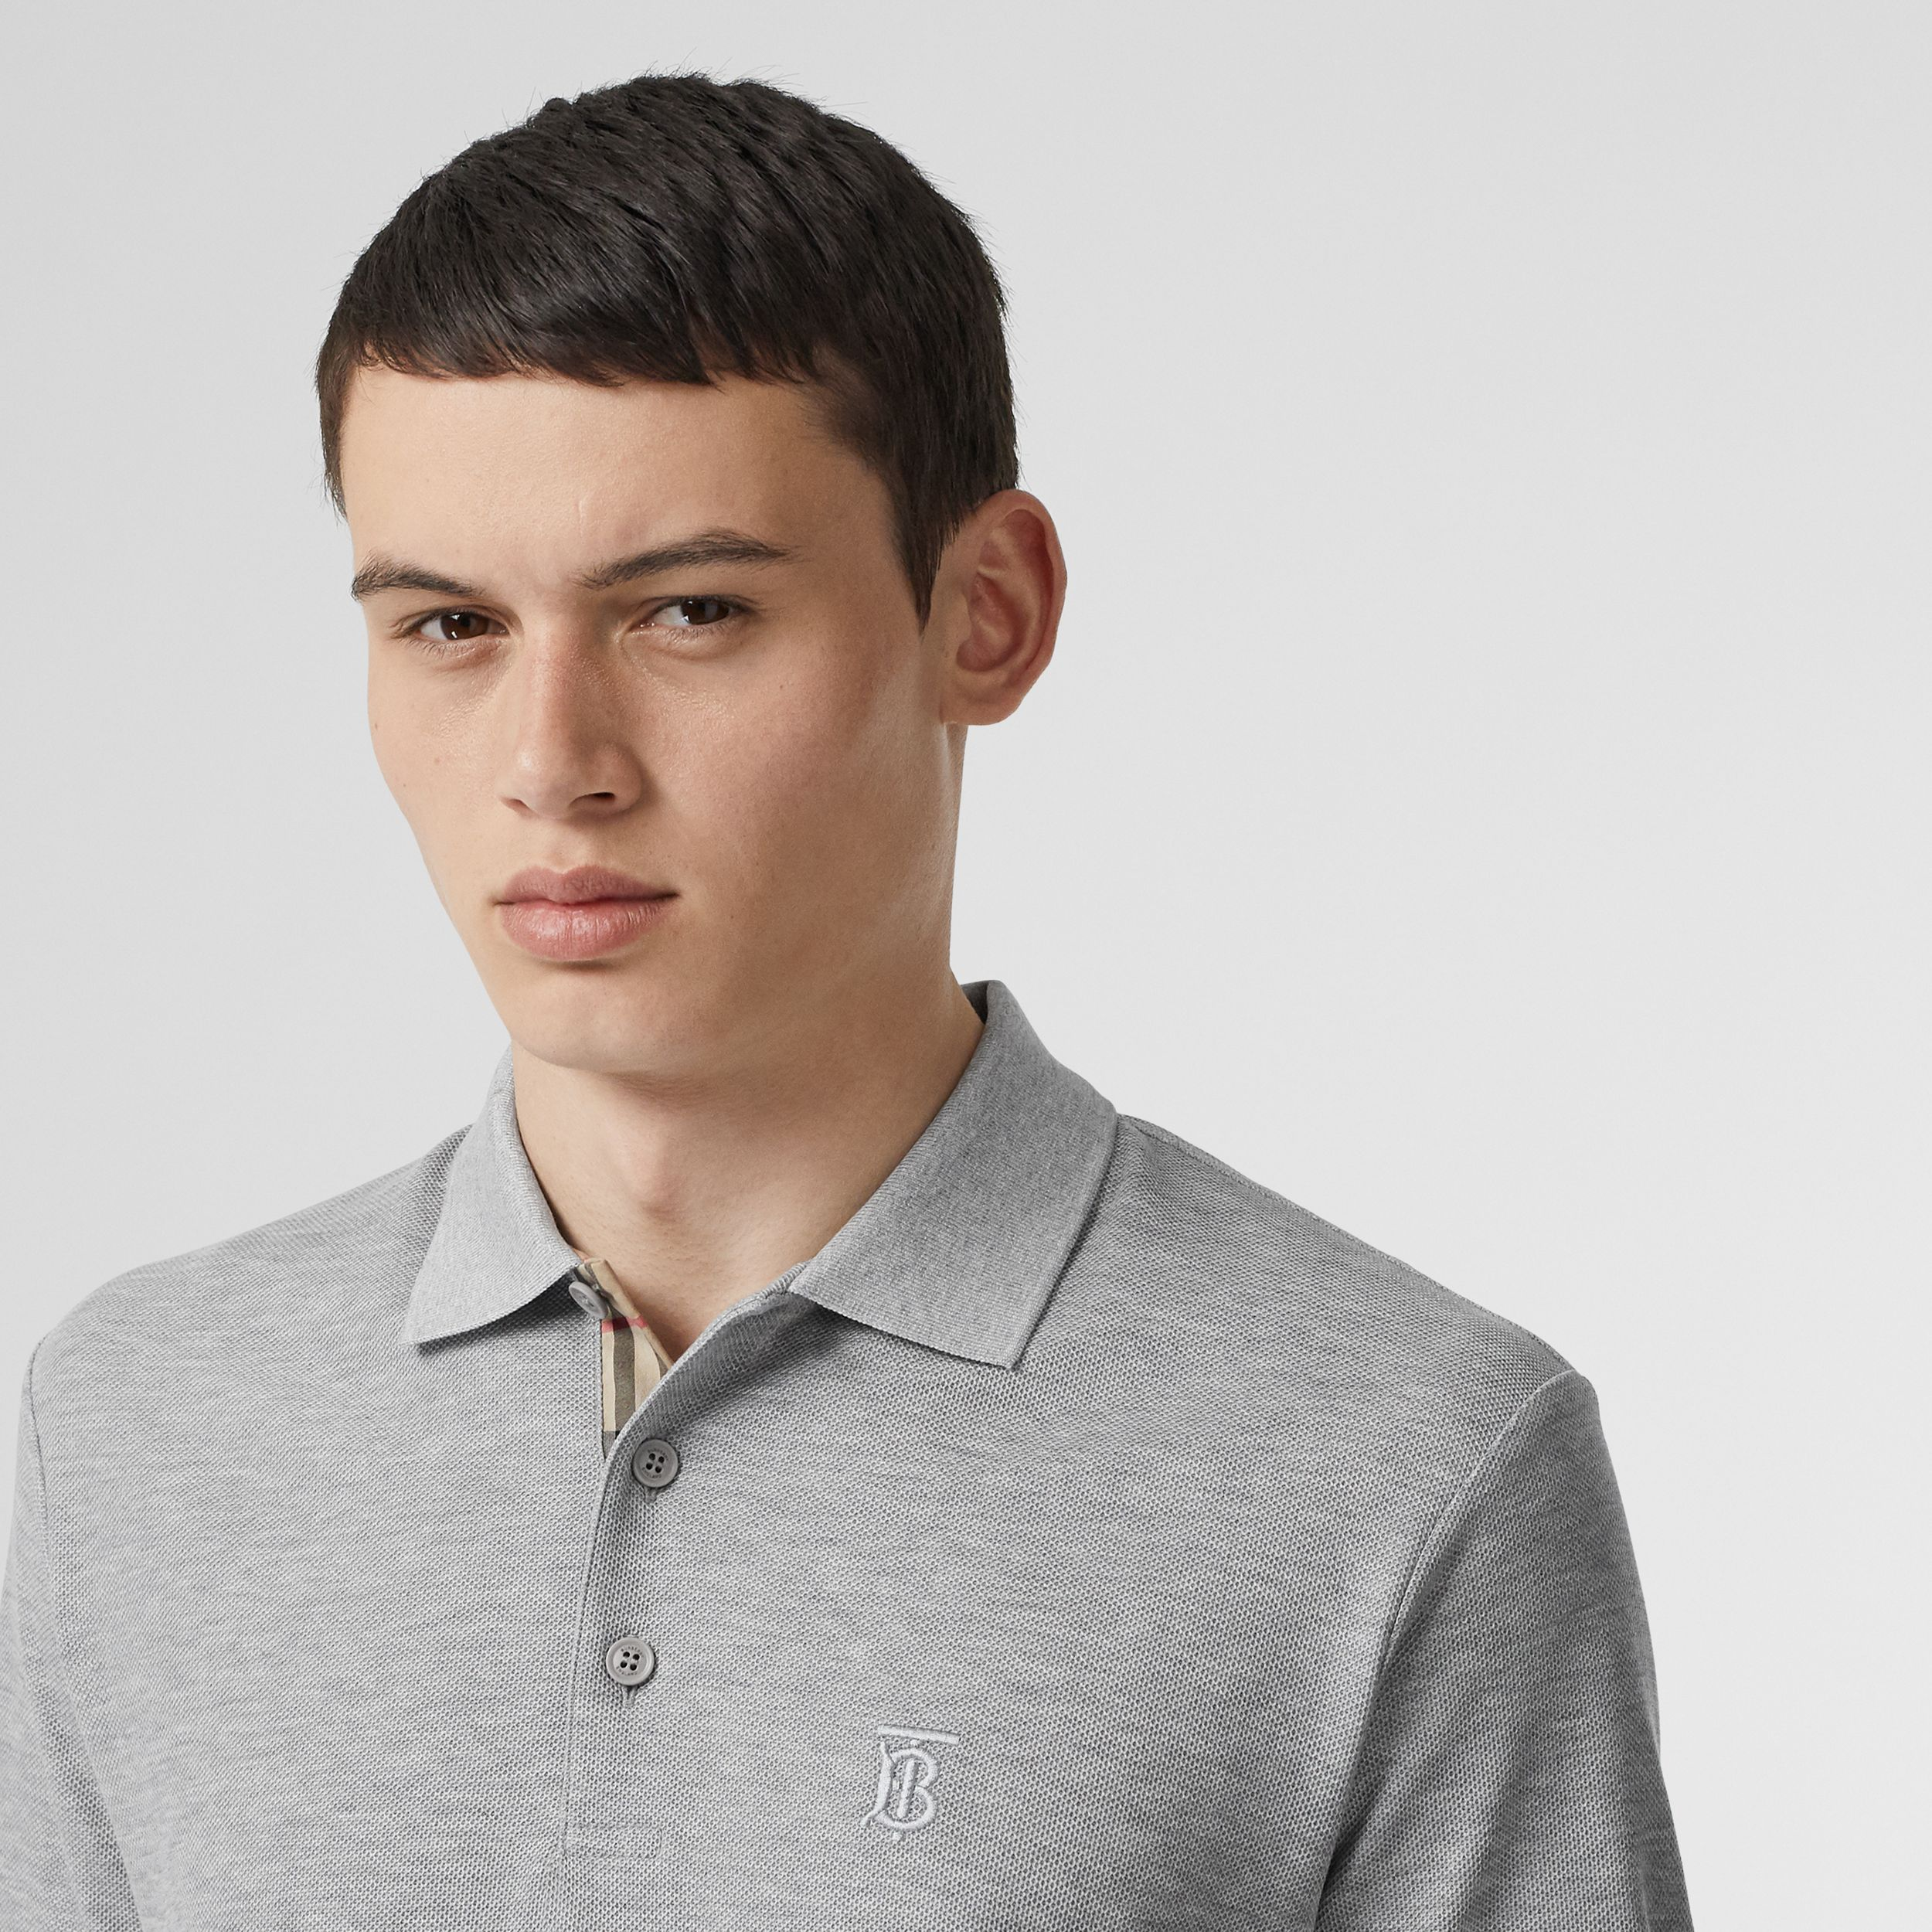 Monogram Motif Cotton Piqué Polo Shirt in Pale Grey Melange - Men | Burberry - 2